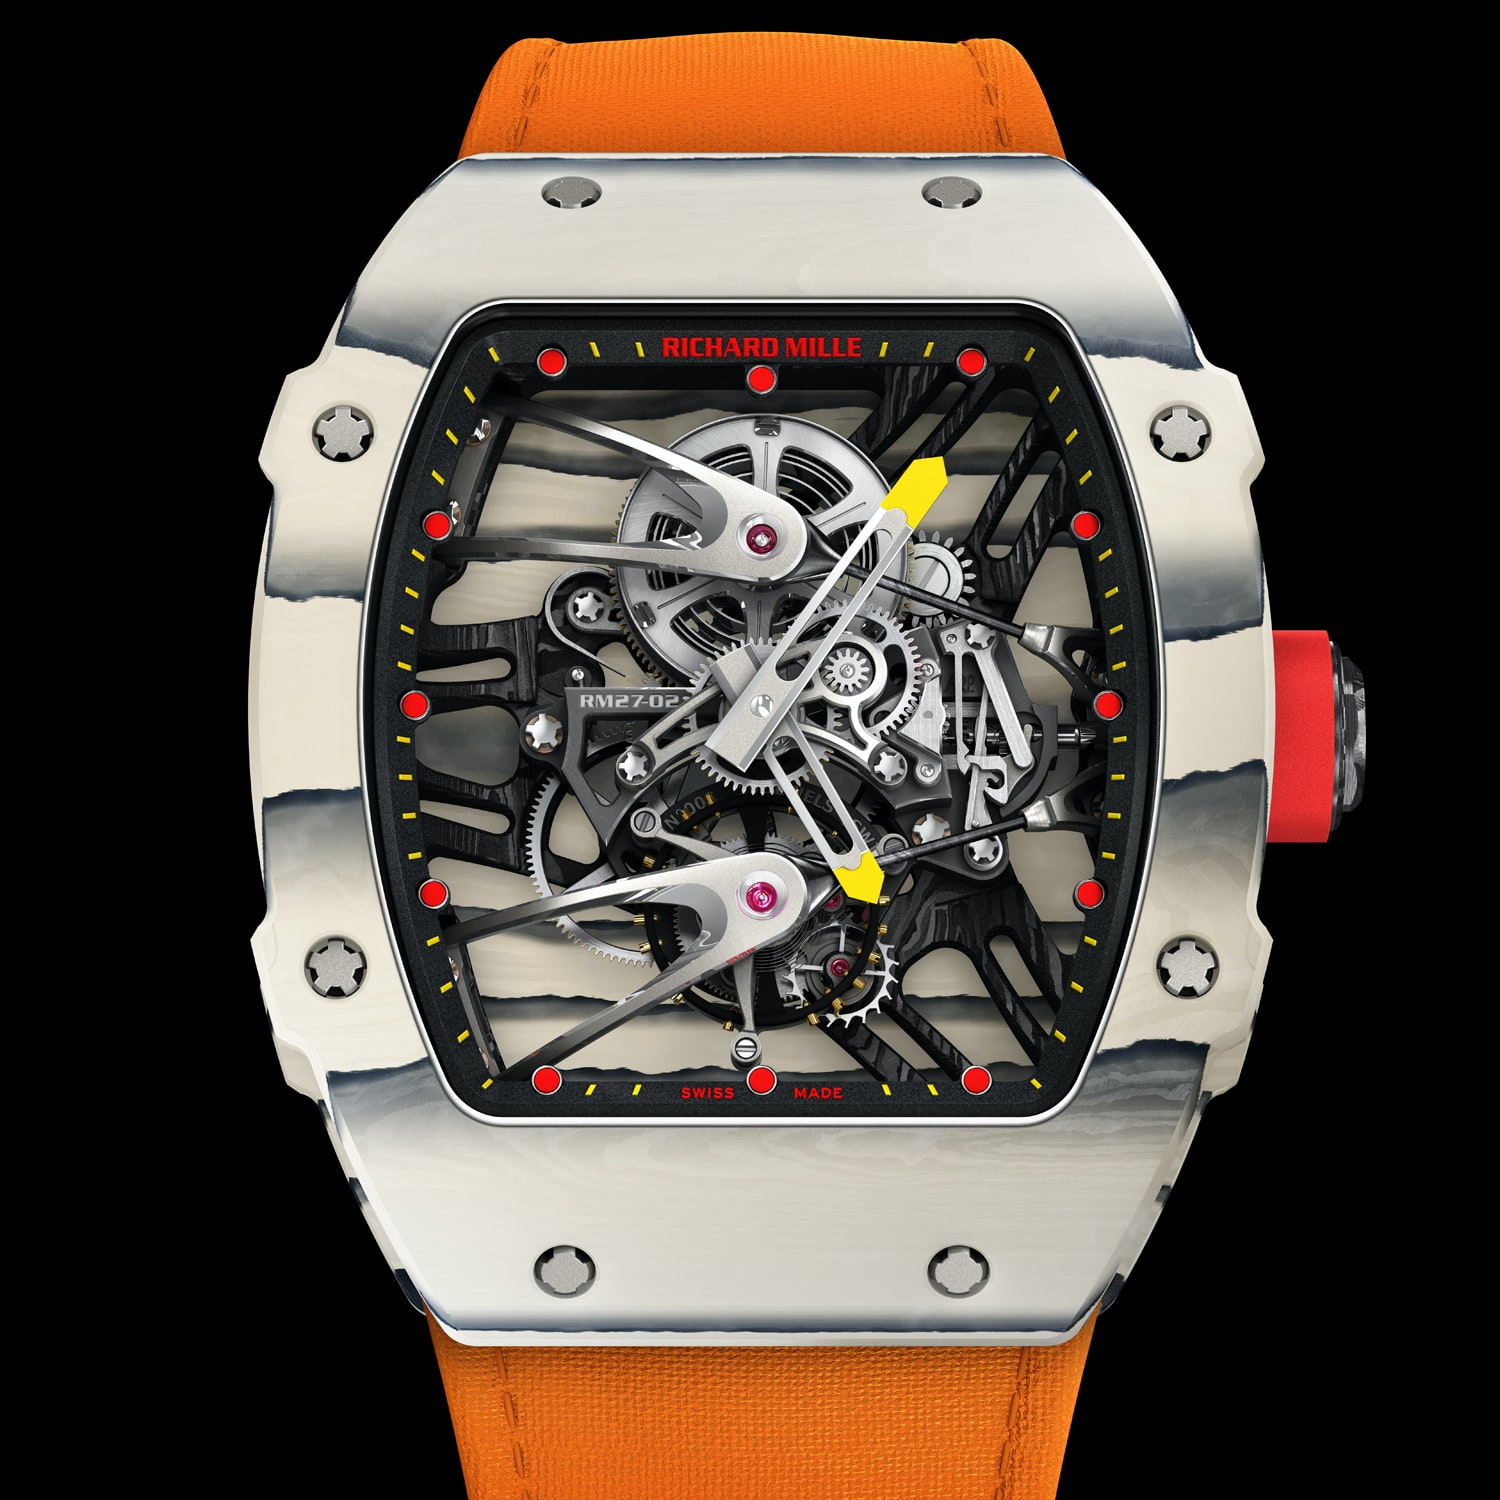 Richard Mille RM 27-02 Introducing: The Richard Mille 67-02 Sprint And High Jump Introducing: The Richard Mille 67-02 Sprint And High Jump 3